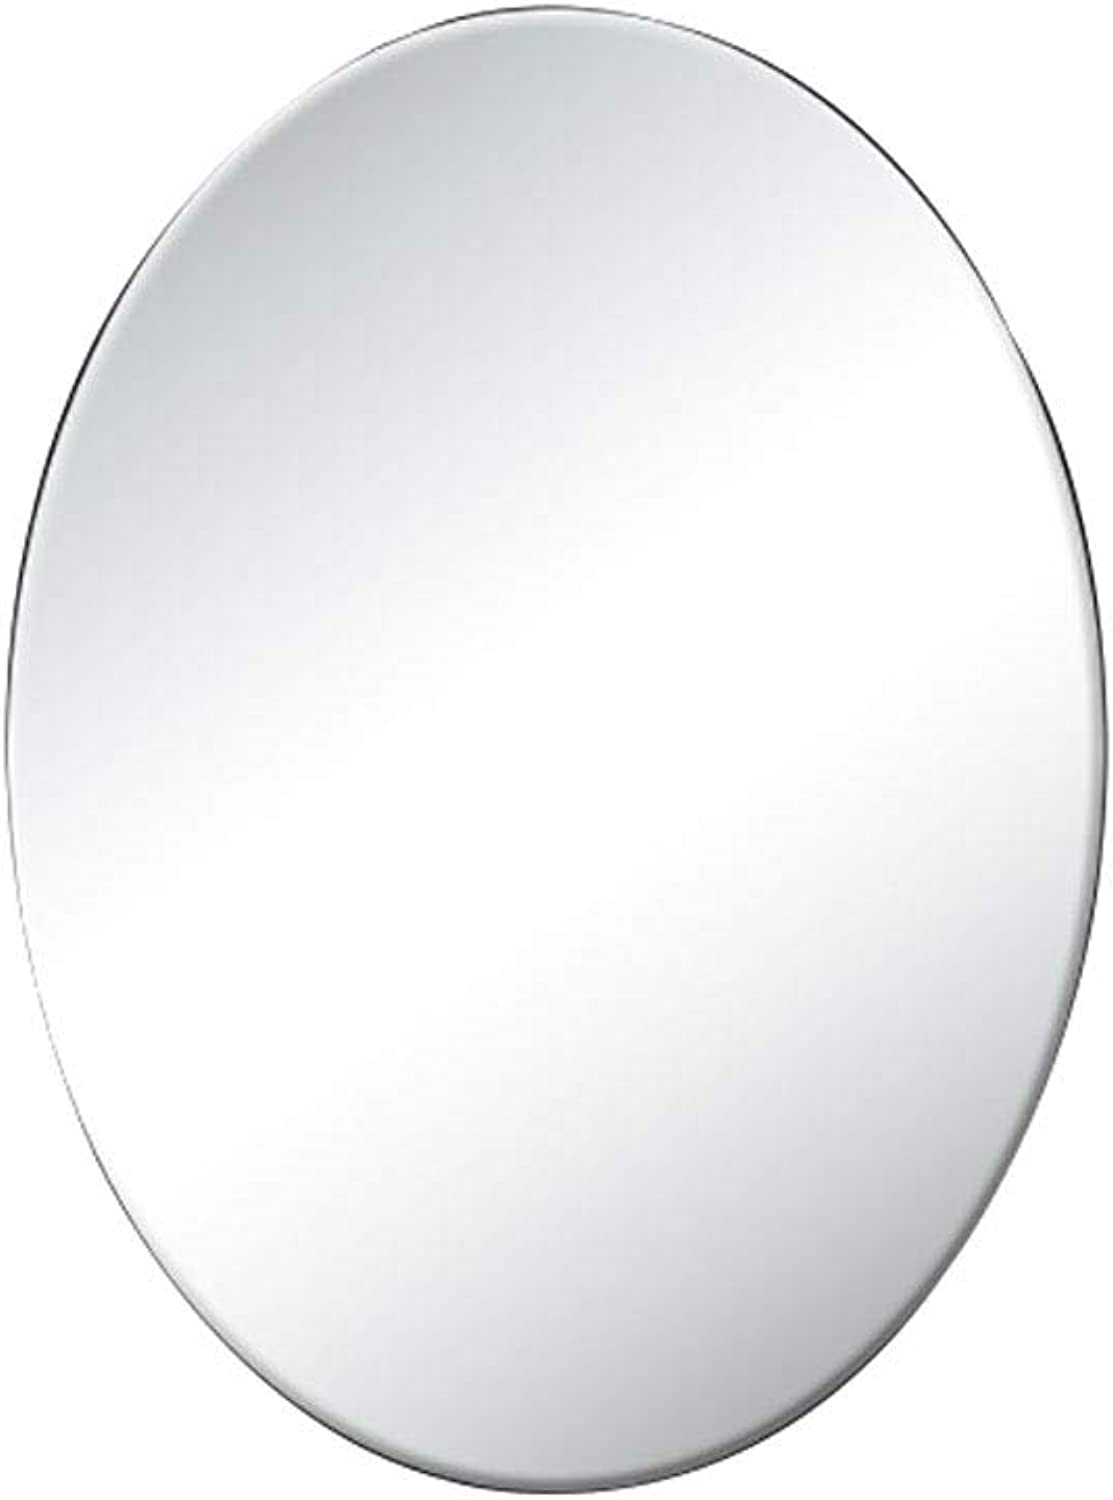 Simple Explosion-Proof Bathroom Mirror Wall Mount Makeup Mirror Contemporary Floating Glass Panel for Bathroom & Entryway